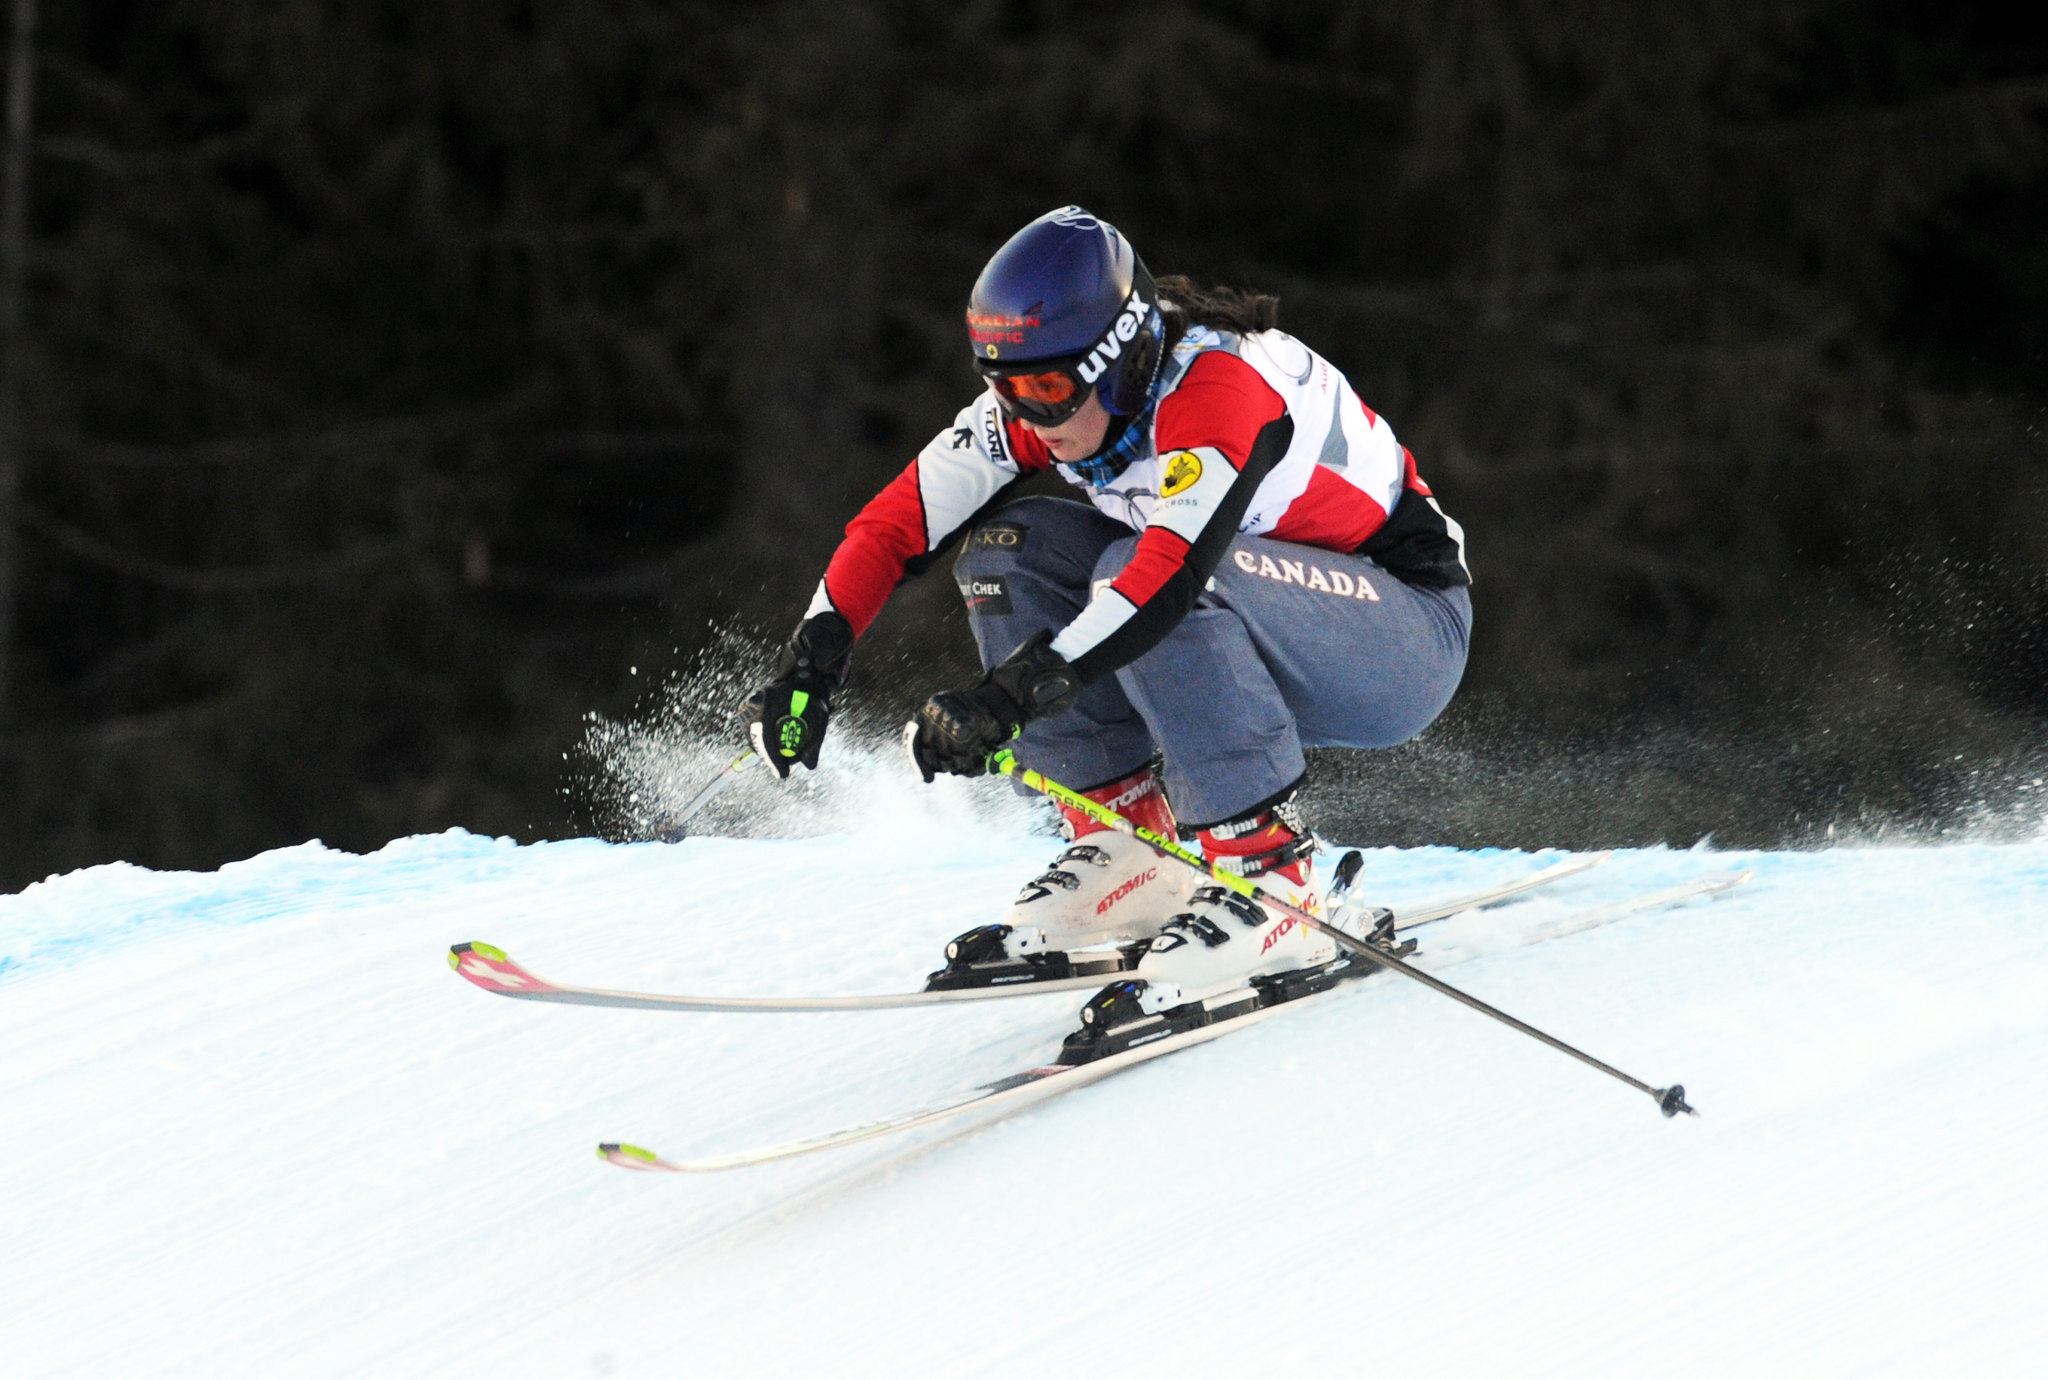 Kelsey Serwa in a qualifying run at the ski cross World Cup in Innichen/San Candido, Italy.